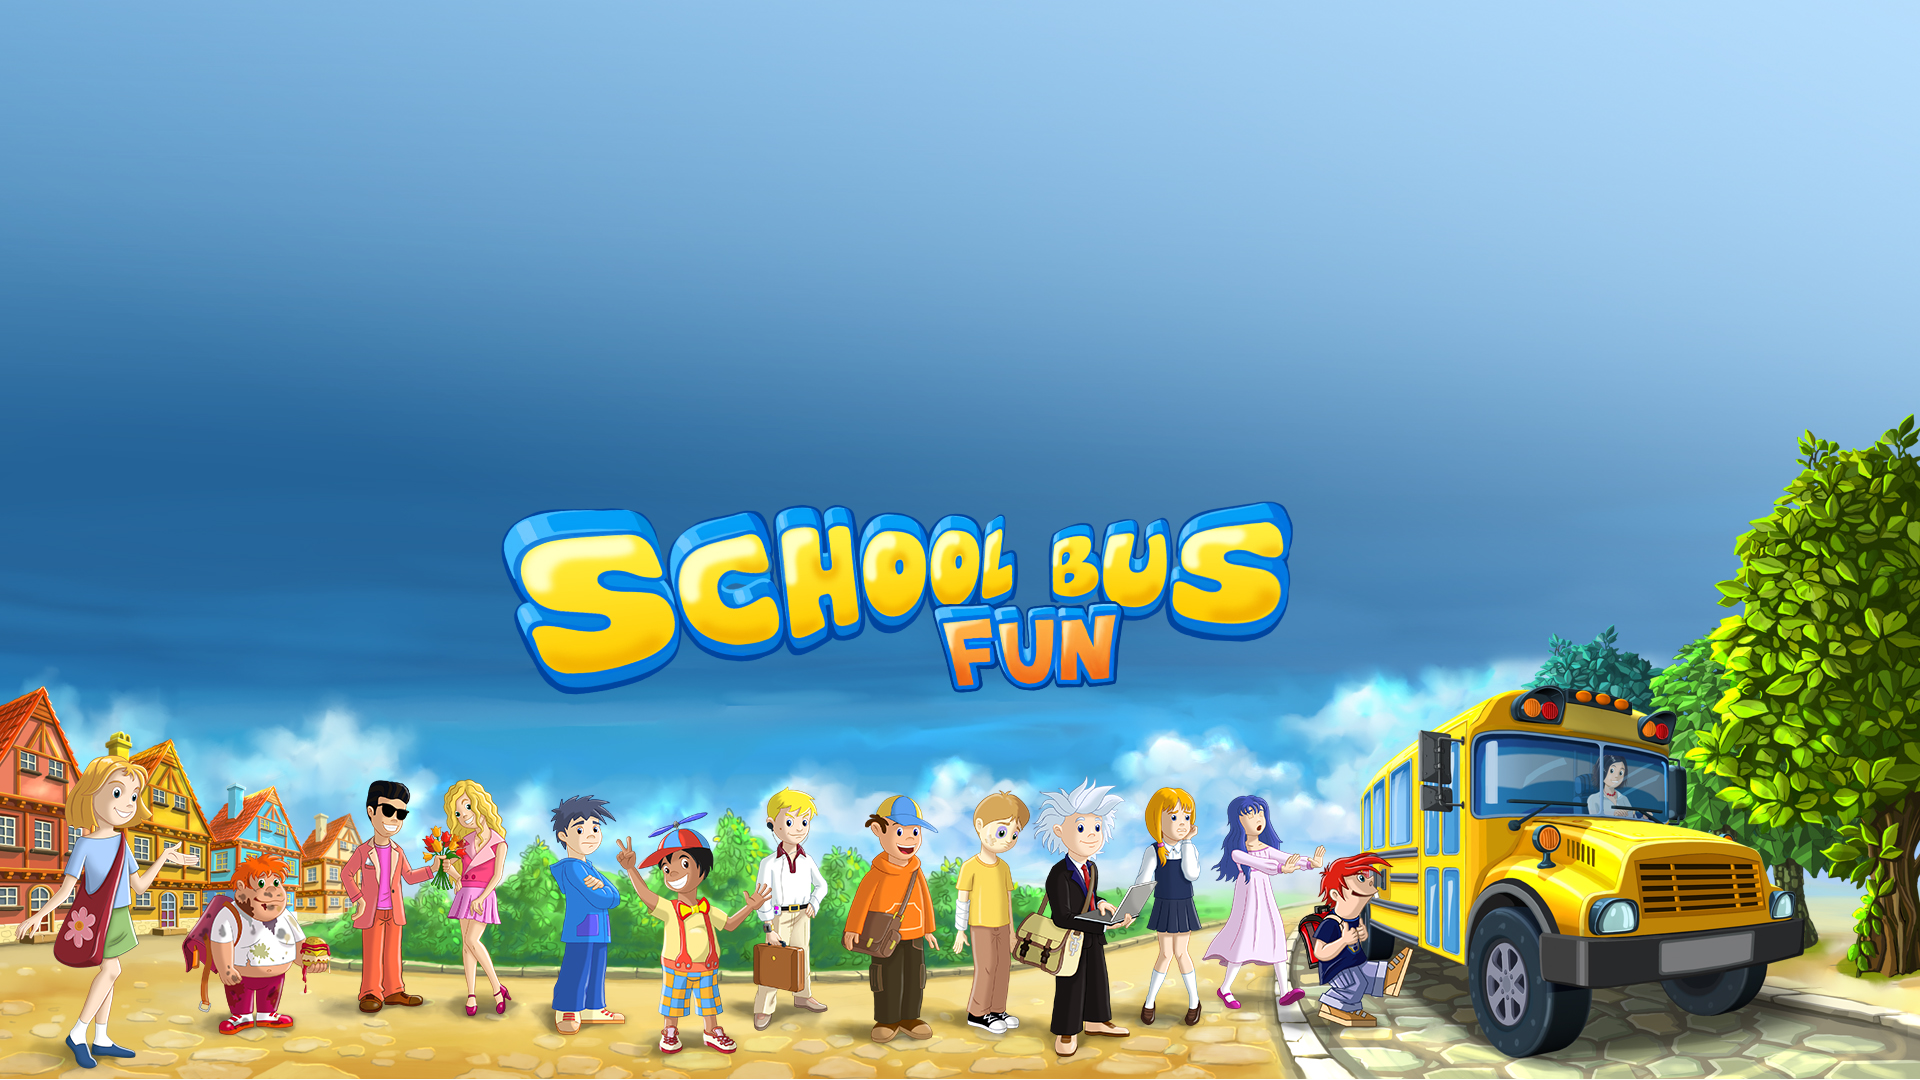 School Bus Fun Desktop Wallpaper 1920x1080